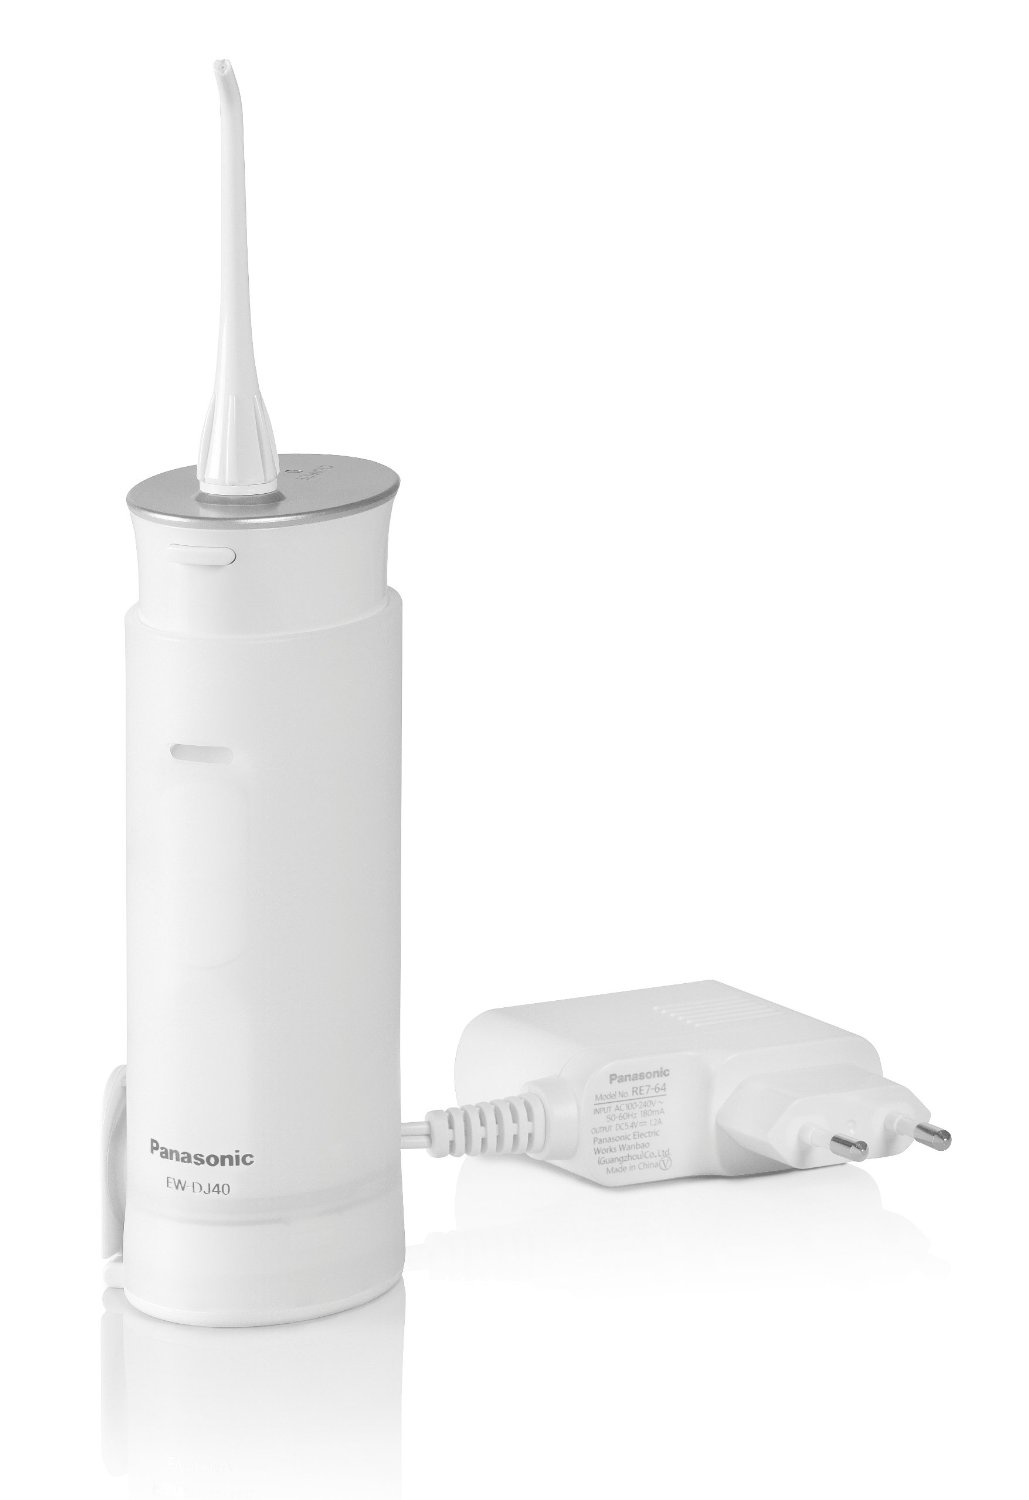 Panasonic EW-DJ40 DentaCare Cordless Rechargeable Oral Irrigator